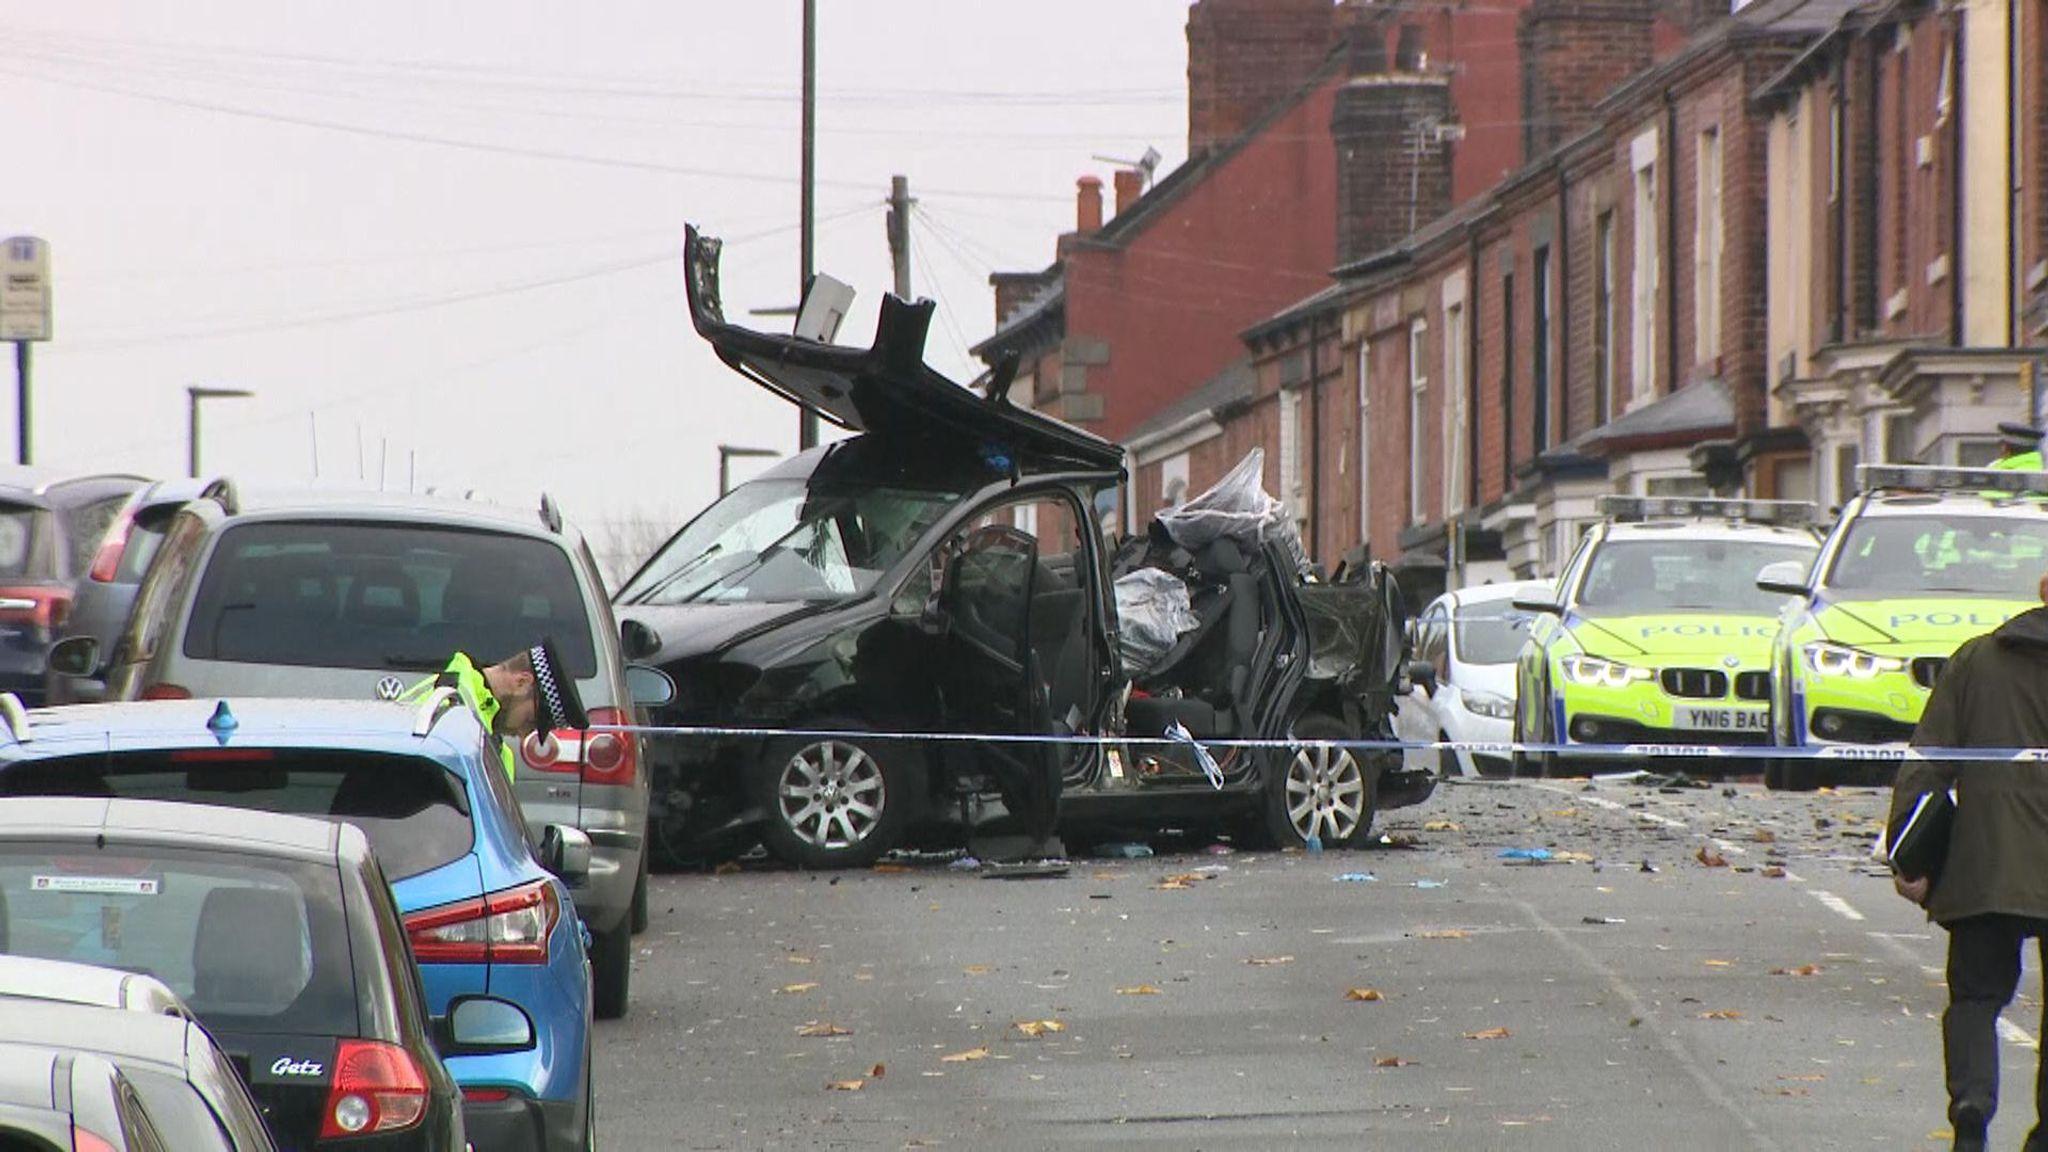 e0e1aa6920 Four killed in Sheffield crash after police chased car | UK News | Sky News